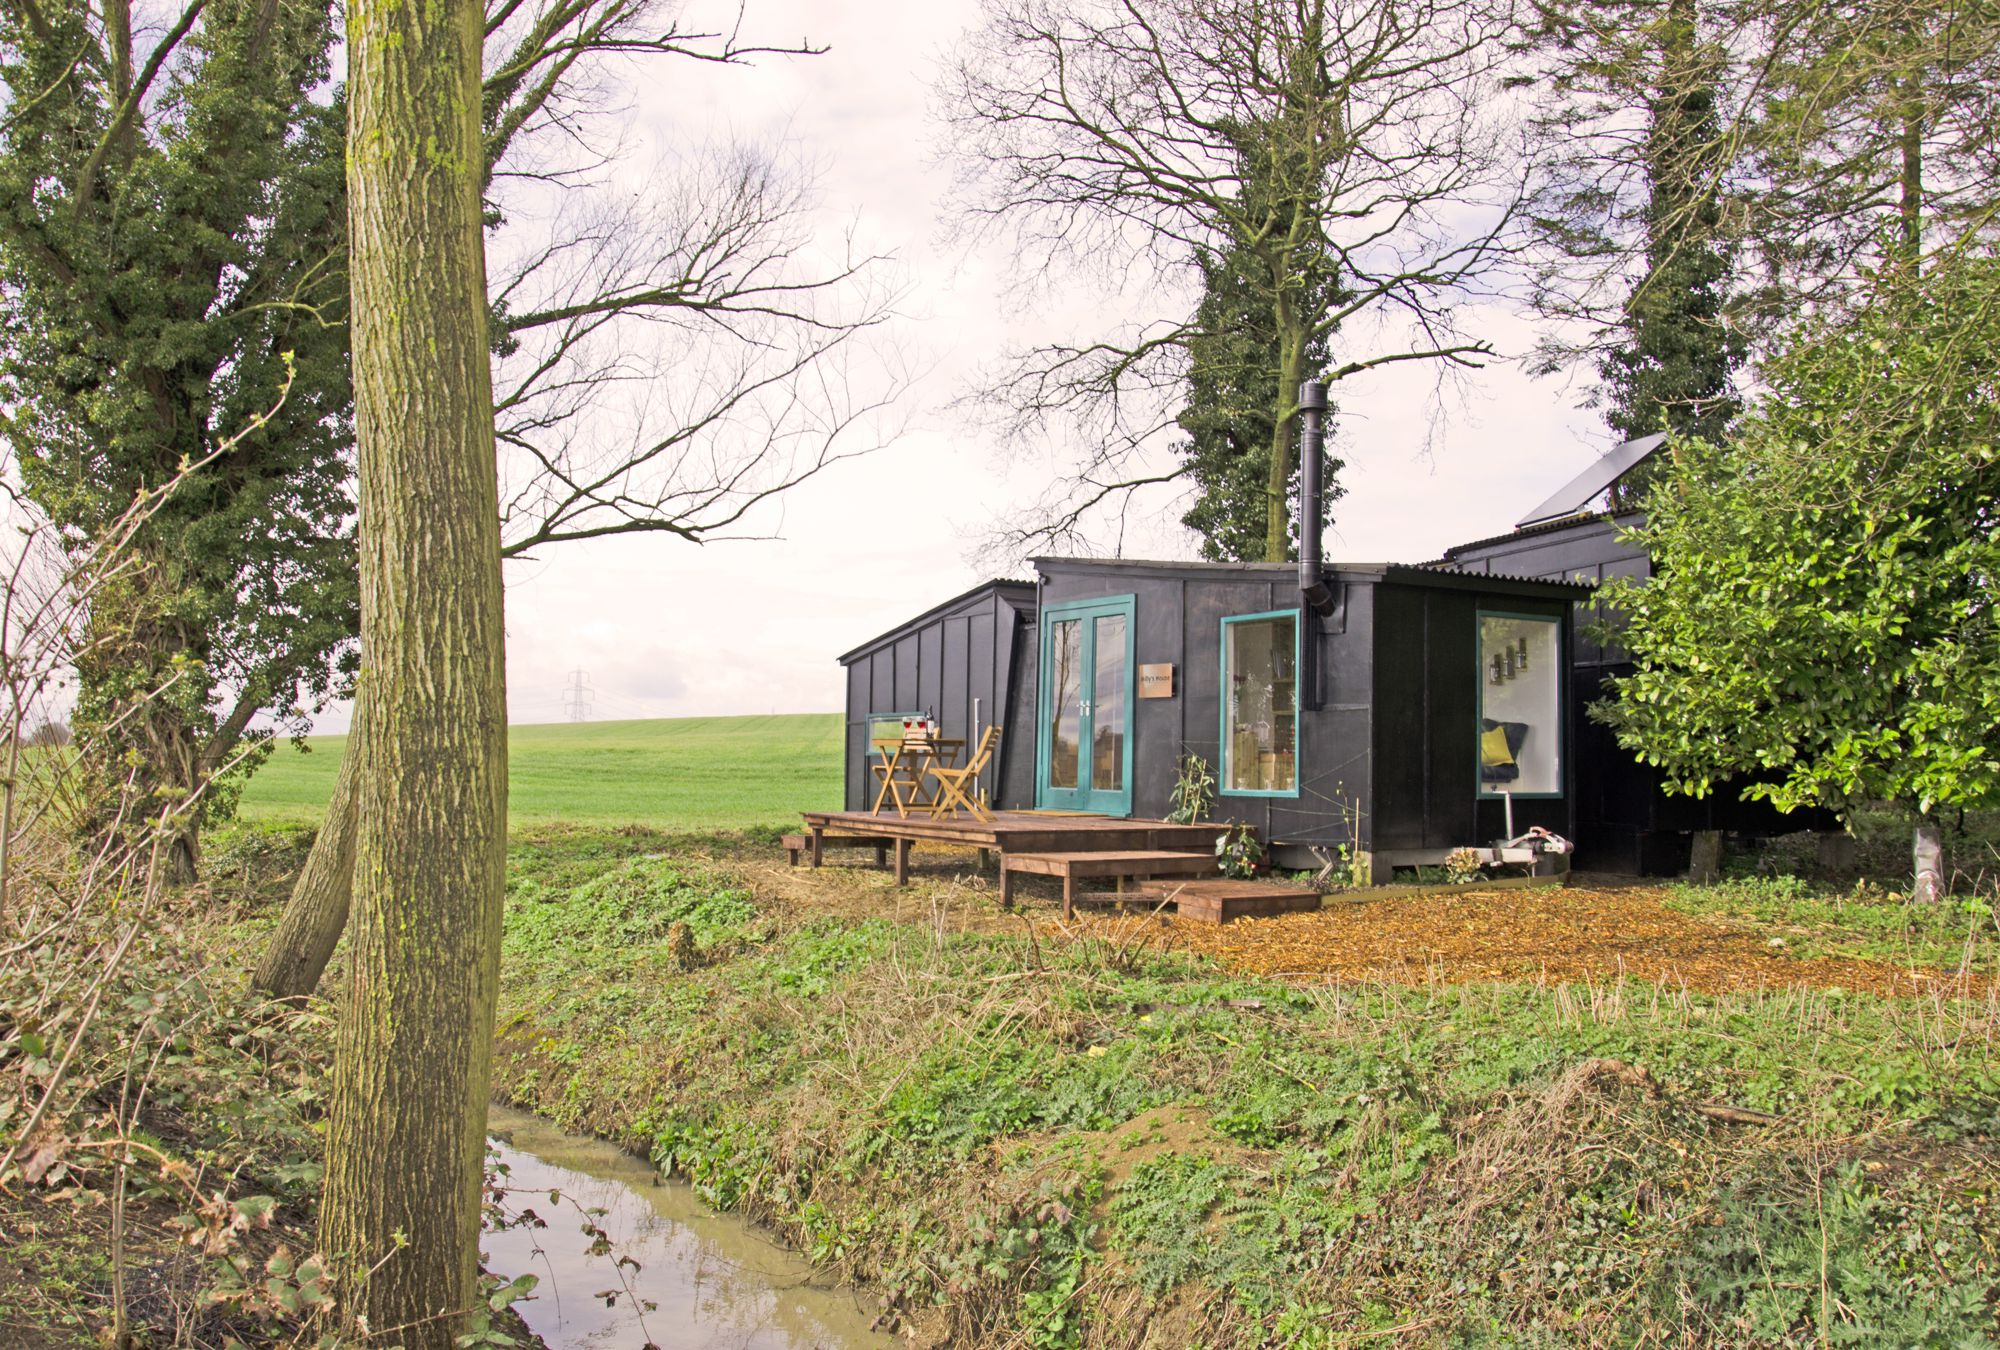 Glamping in Hertfordshire – The best glamping locations in Hertfordshire